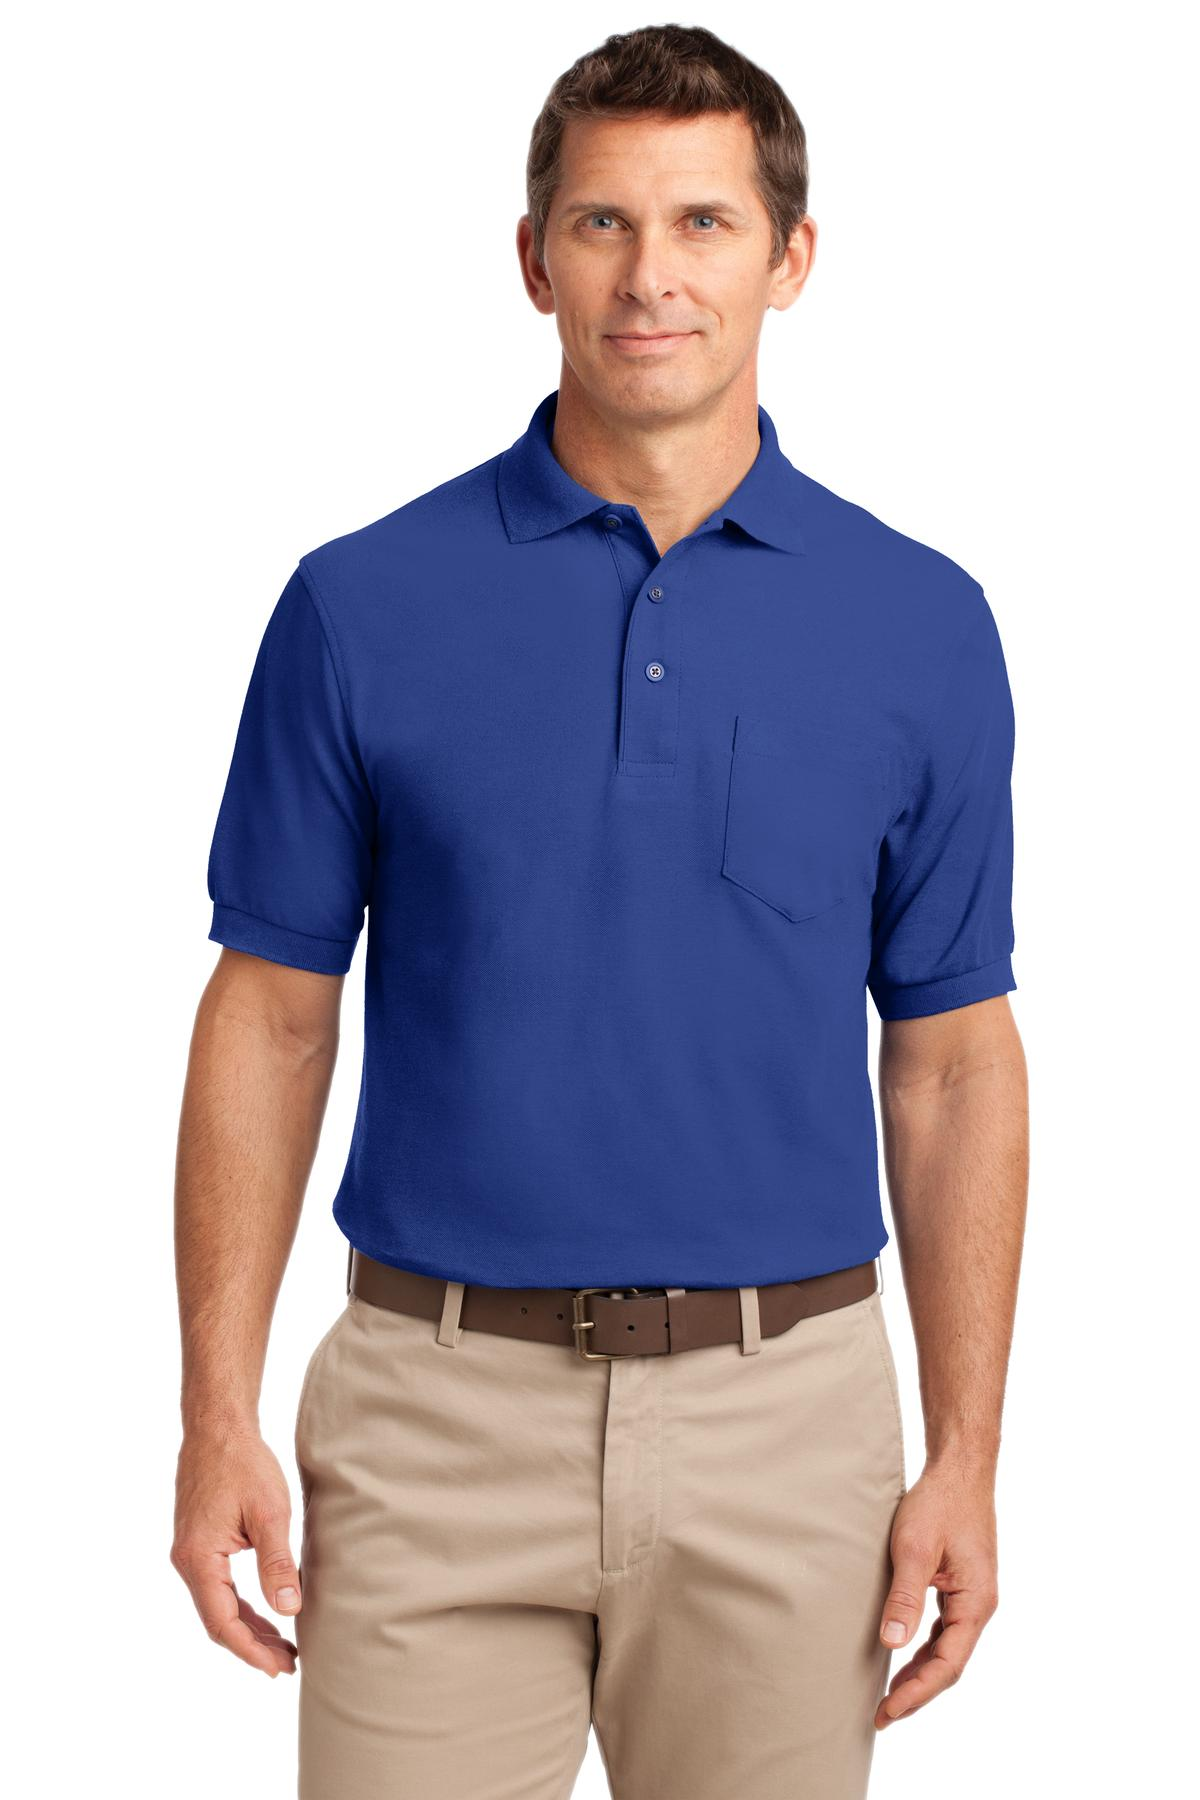 9326a2a4 Port Authority Men's Silk Touch Pocket Polo. K500P.